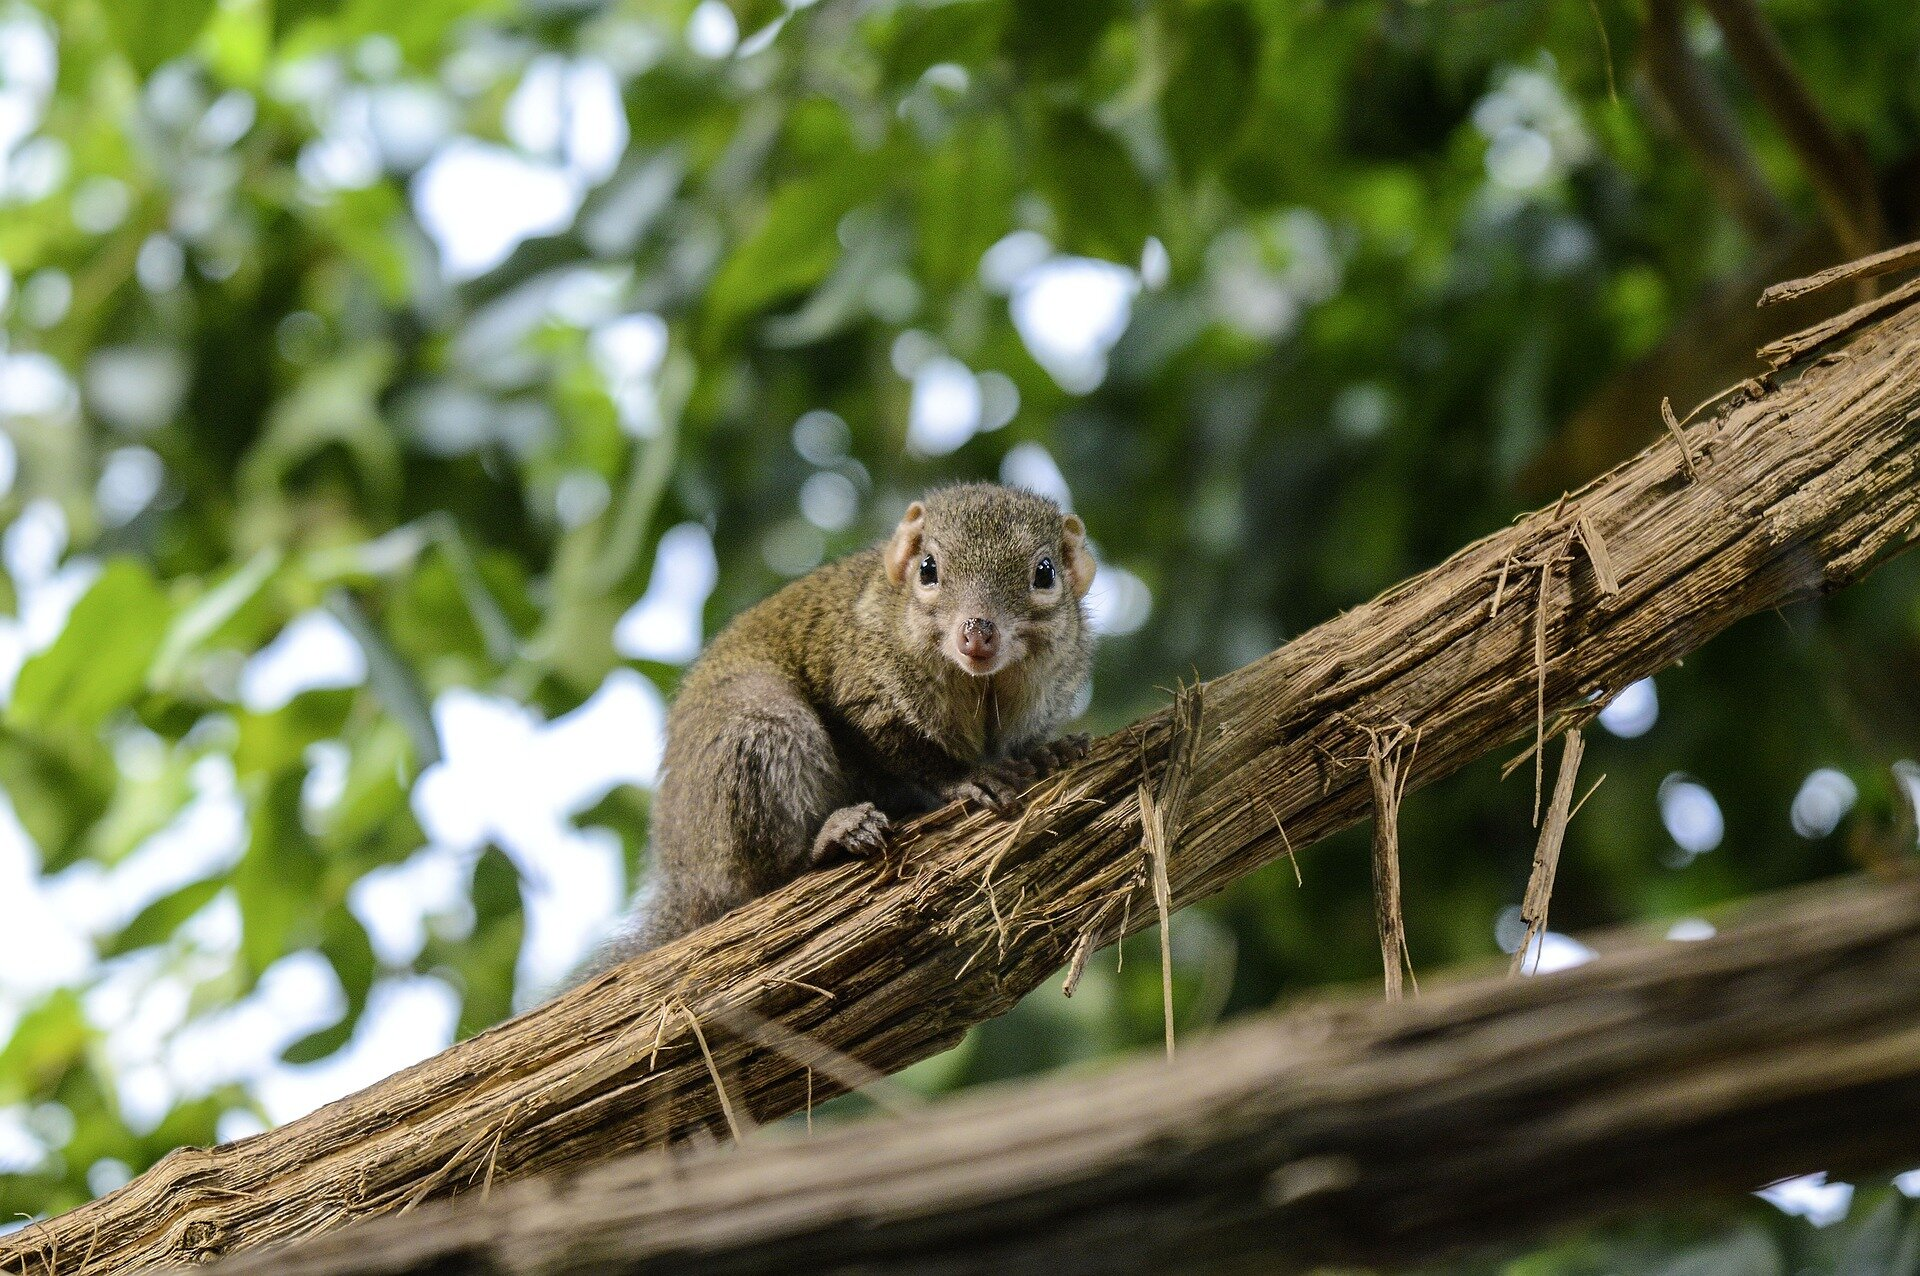 Small Shrew Could Make A Big Difference In Dry Eye Research